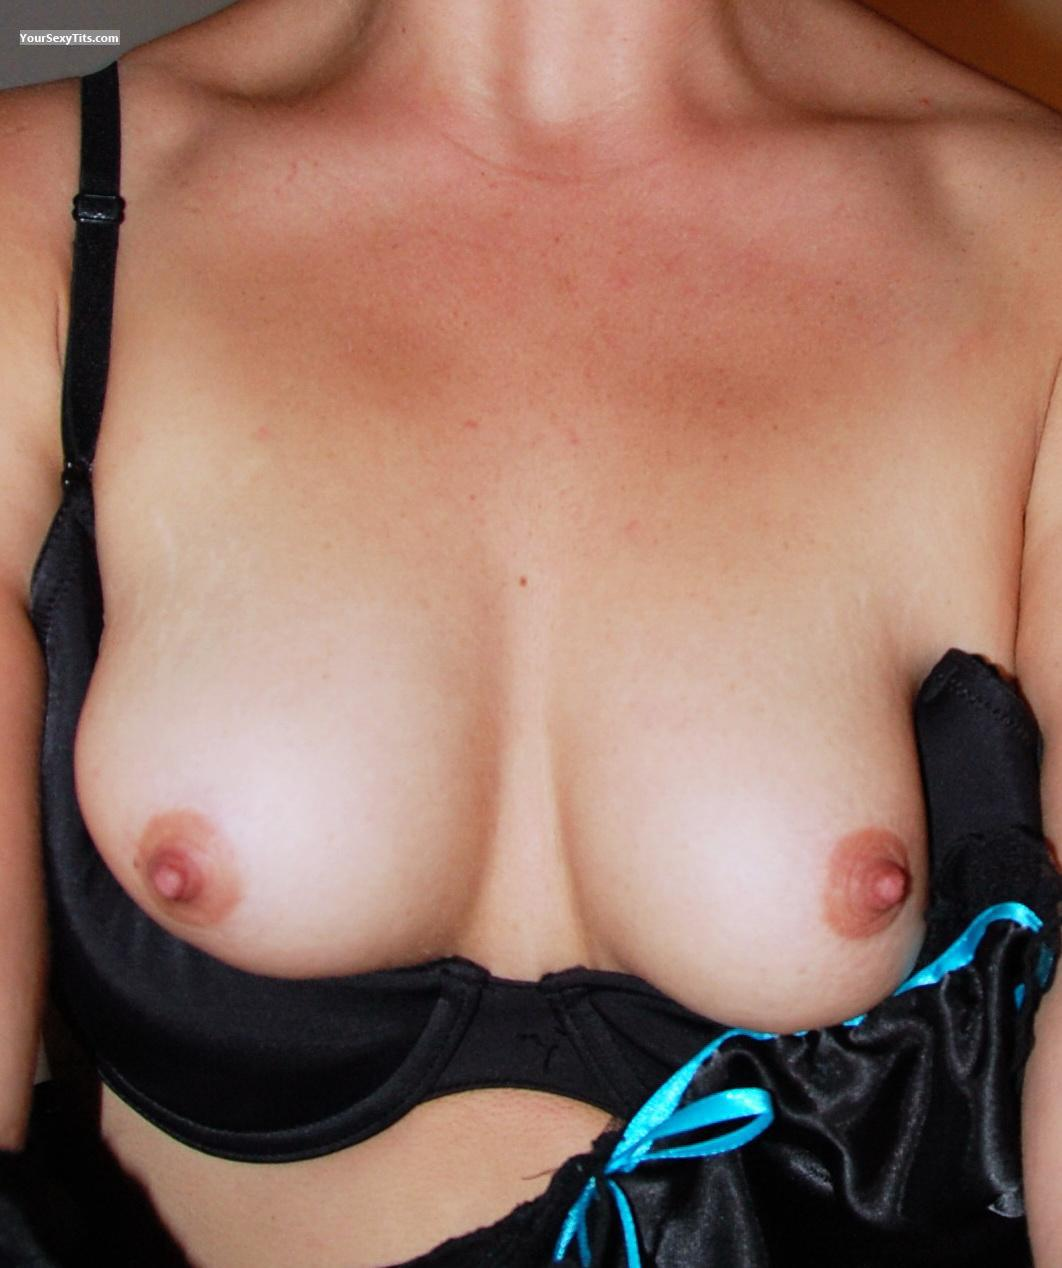 Tit Flash: Small Tits - Nell from United States